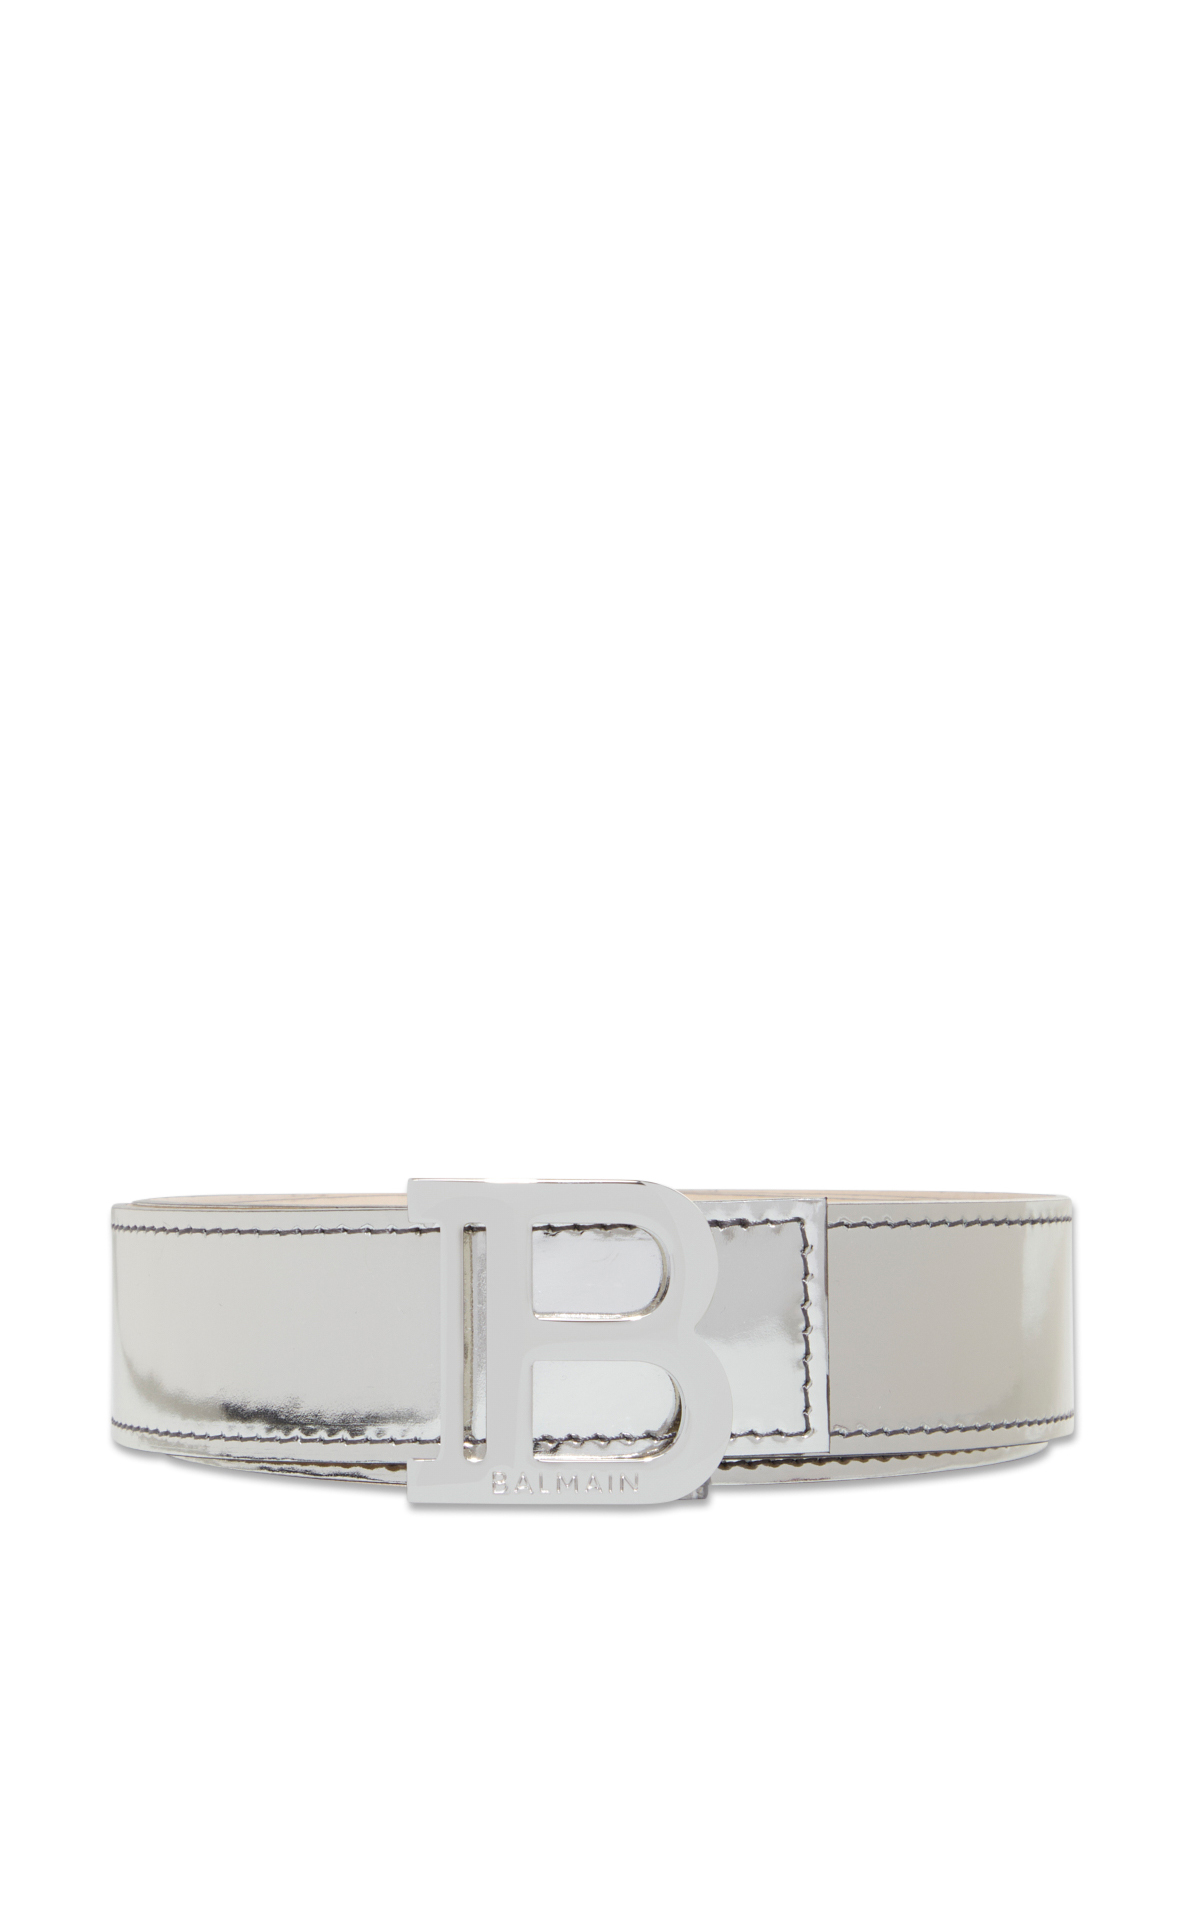 La Vallée Village Balmain Silver belt